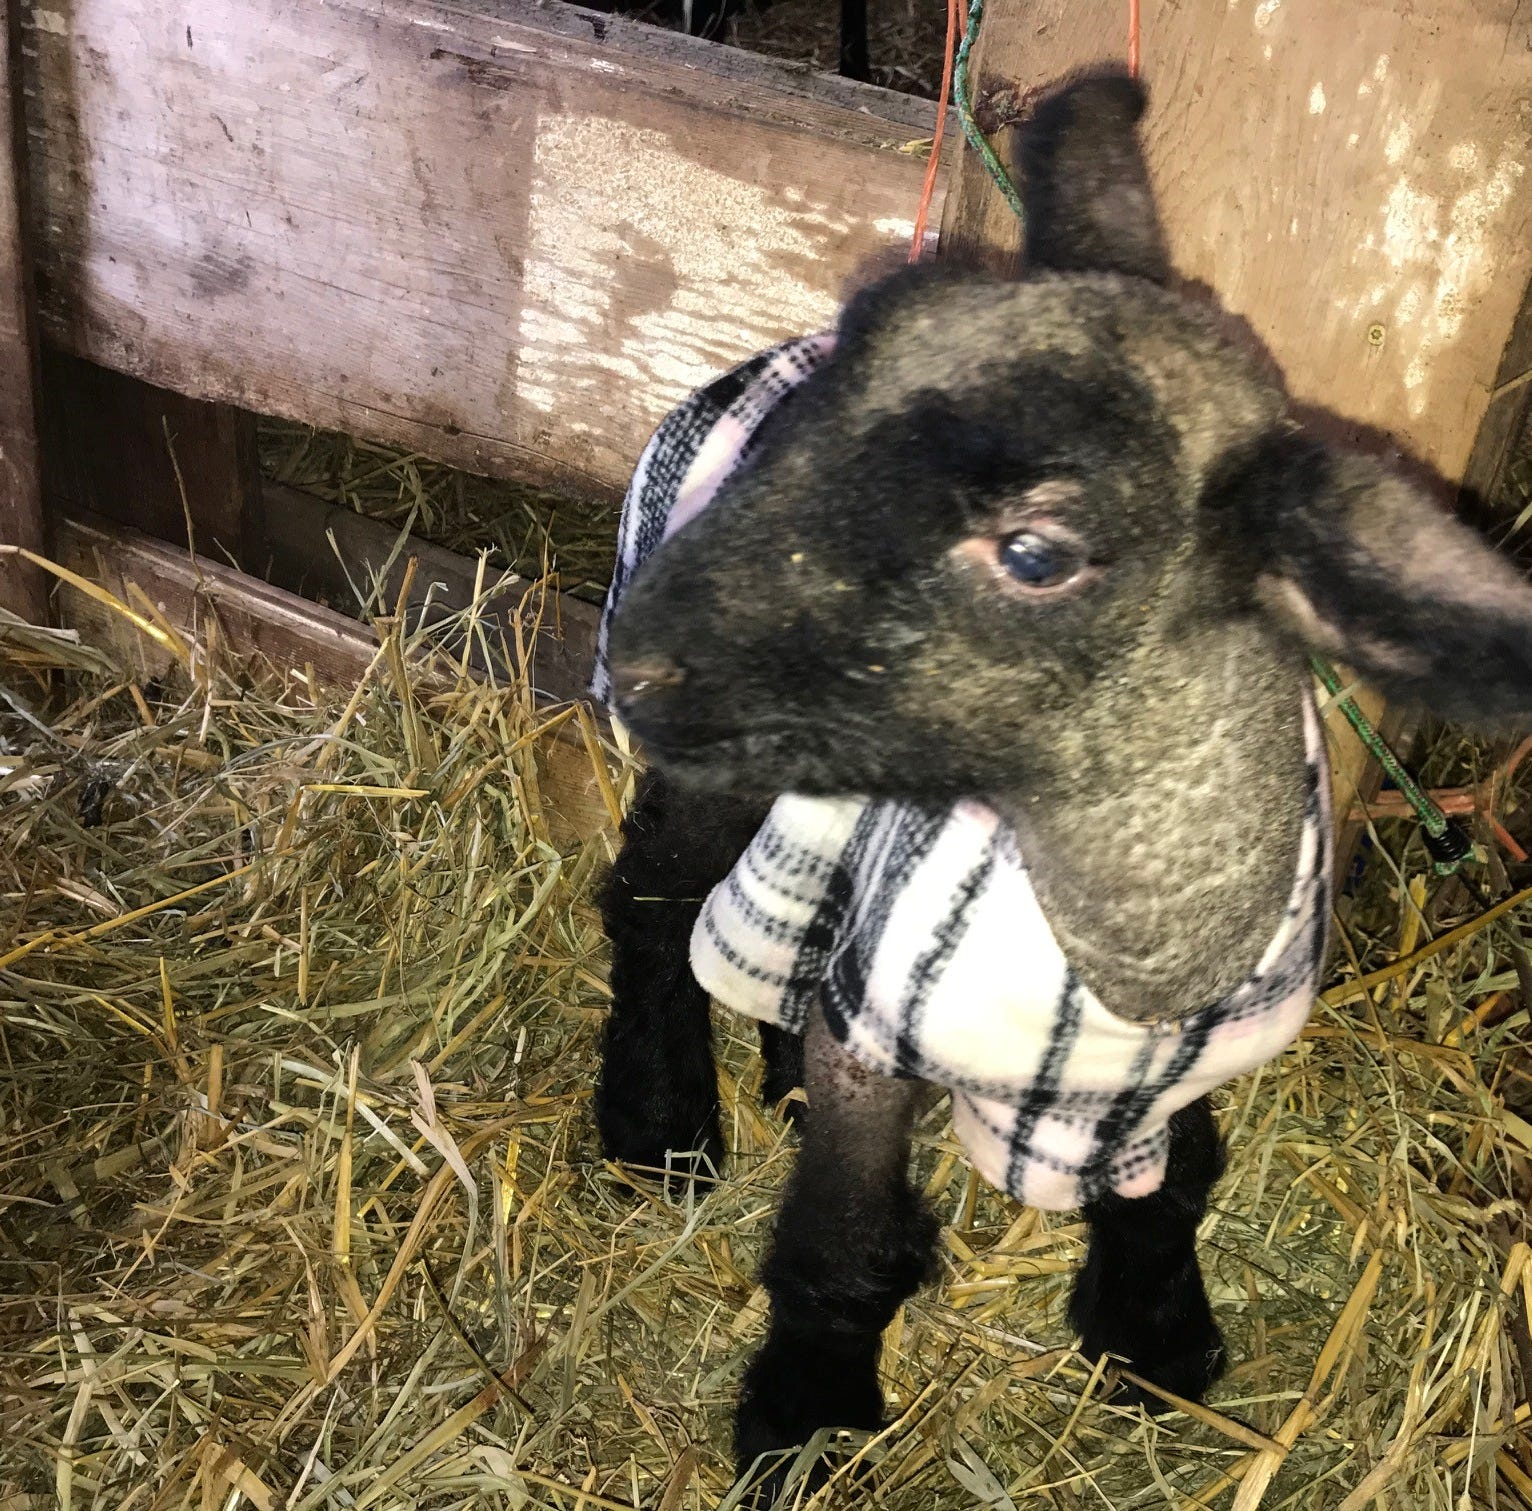 Fleecy fashions protect lambs from winter's big chill